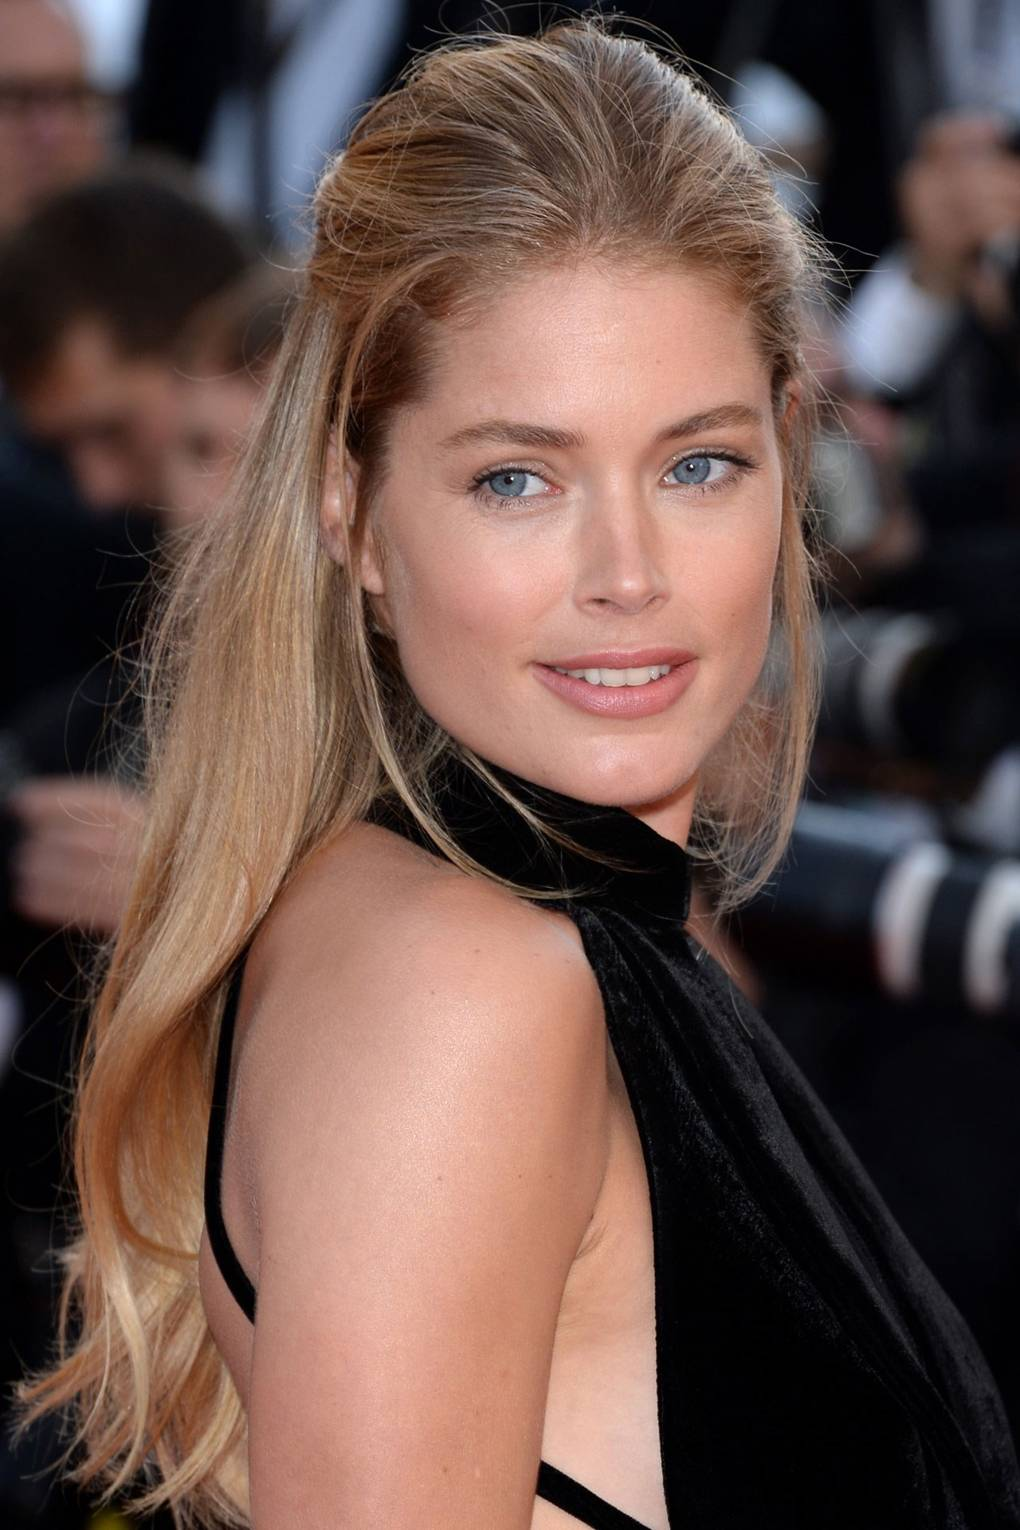 Images Doutzen Kroes nudes (55 photo), Ass, Sideboobs, Feet, cleavage 2020